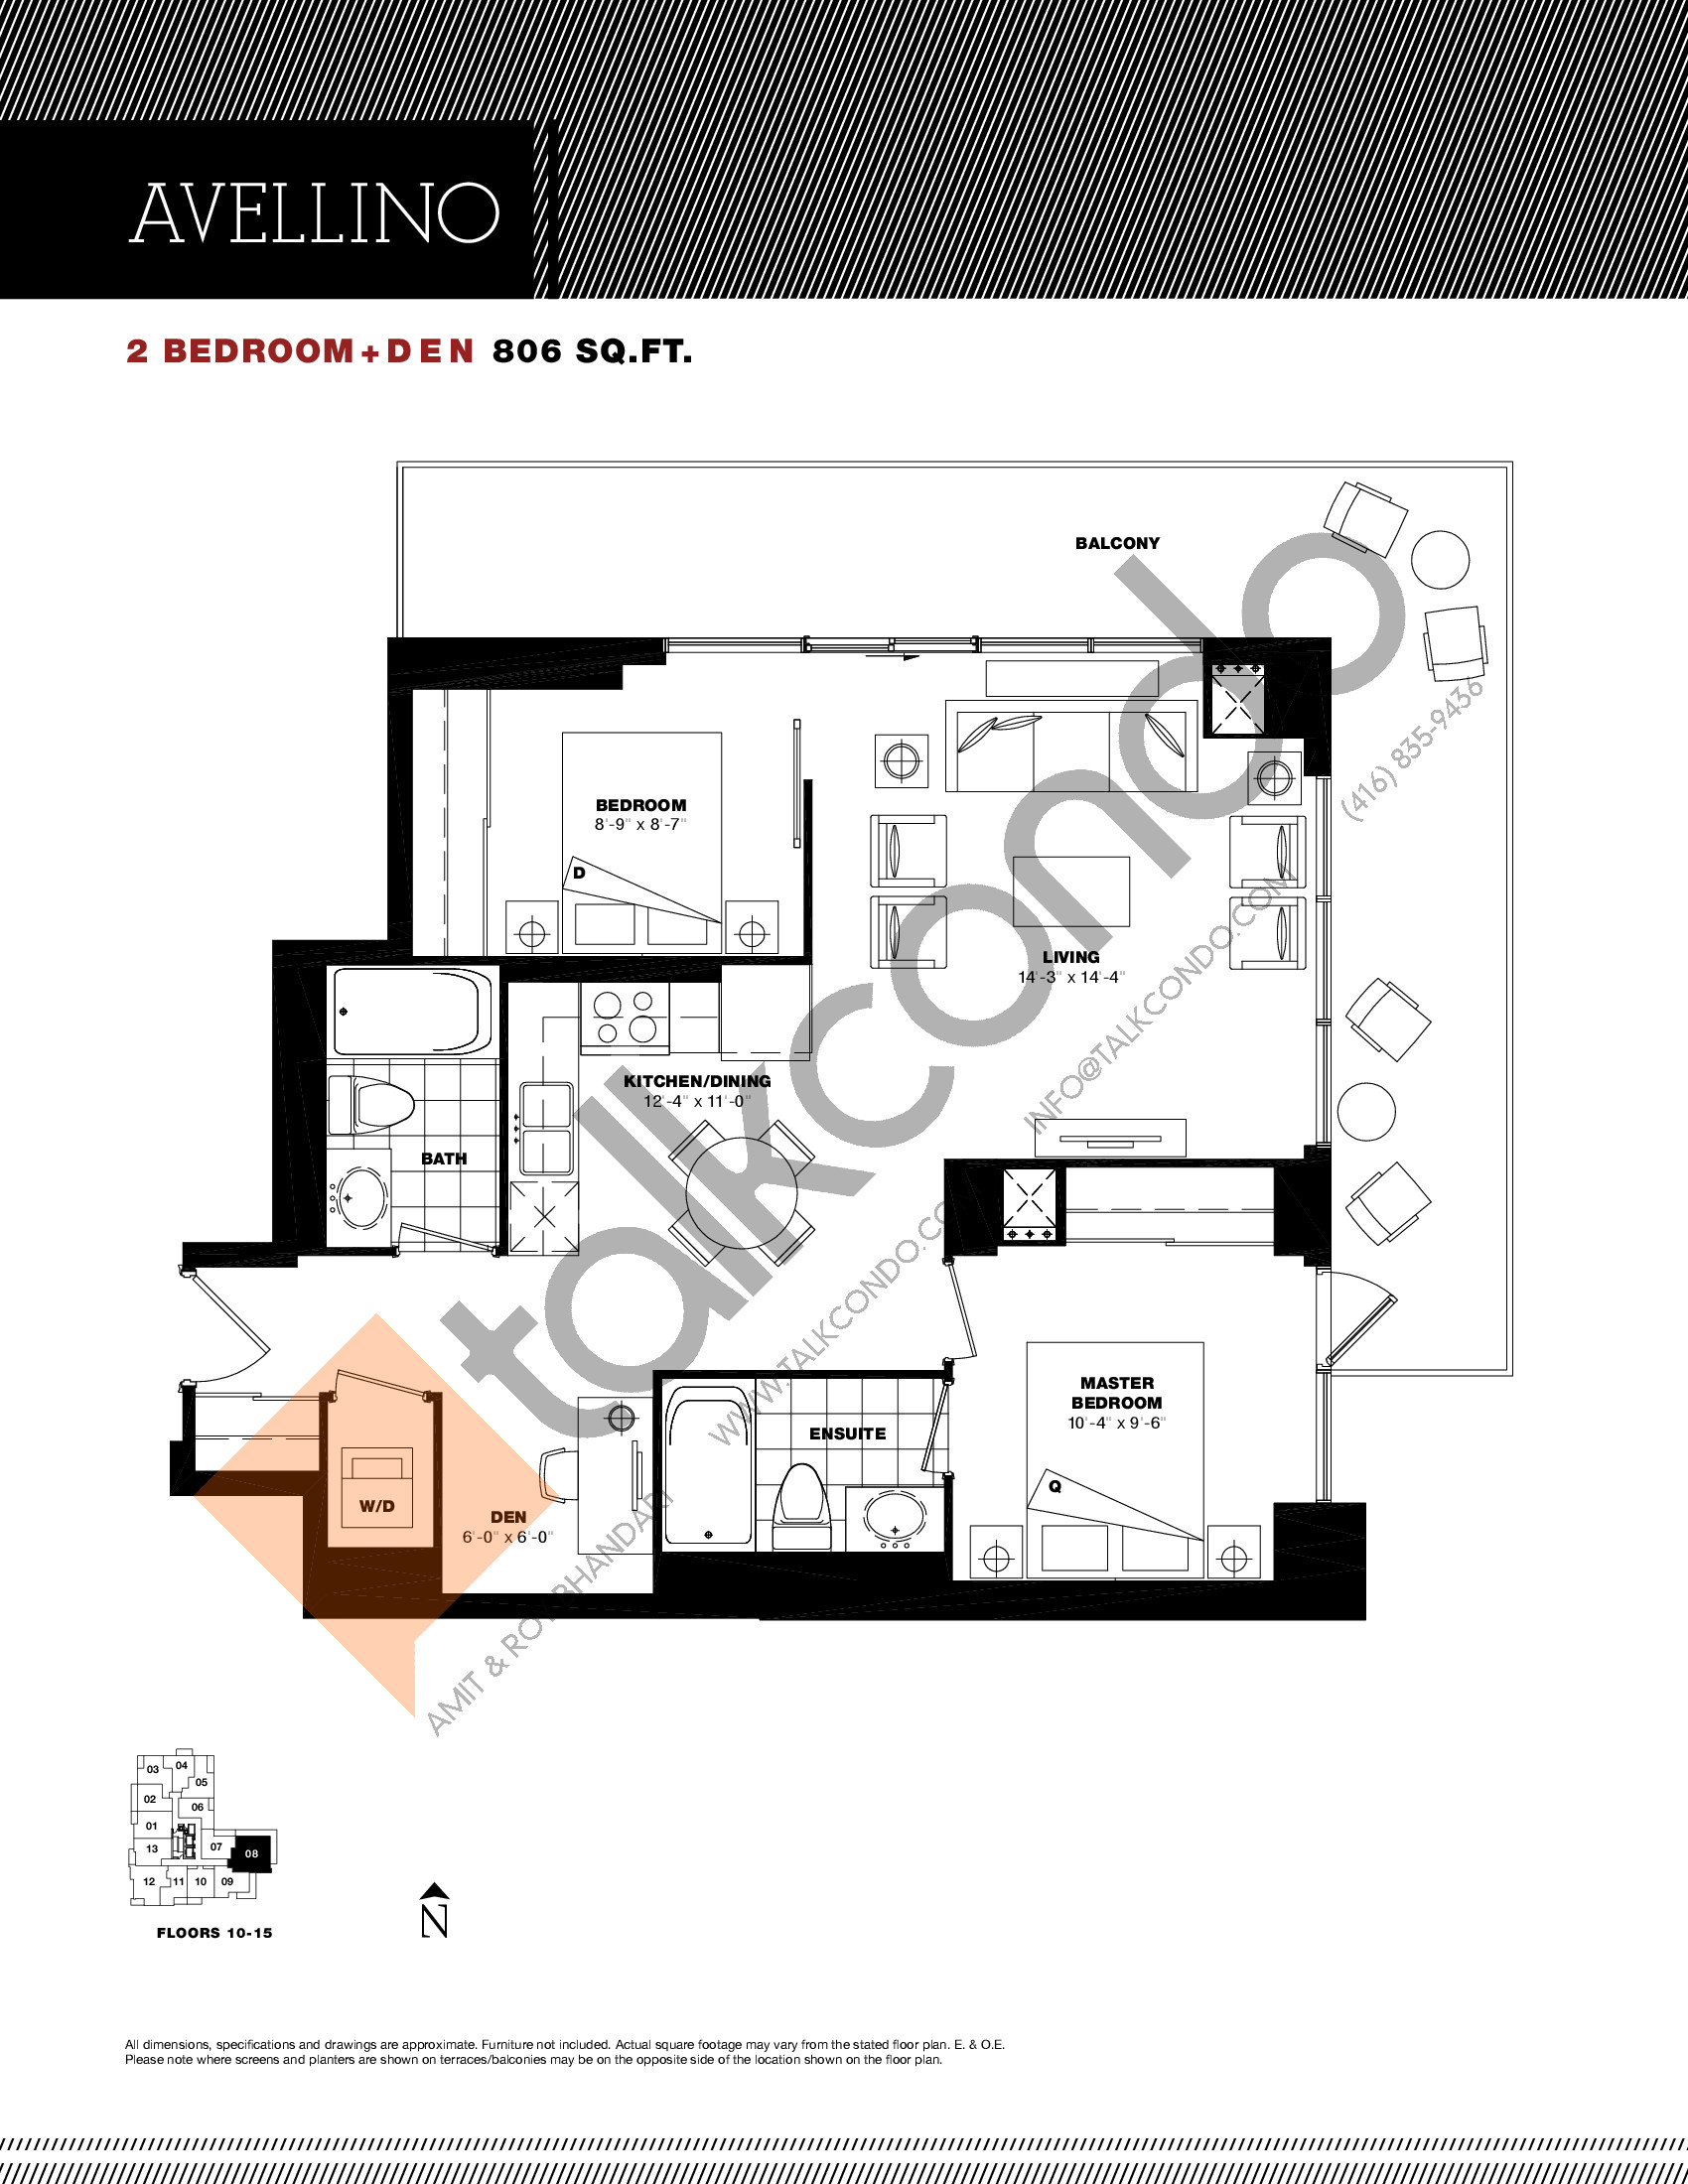 Avellino Floor Plan at Residenze Palazzo at Treviso 3 Condos - 806 sq.ft